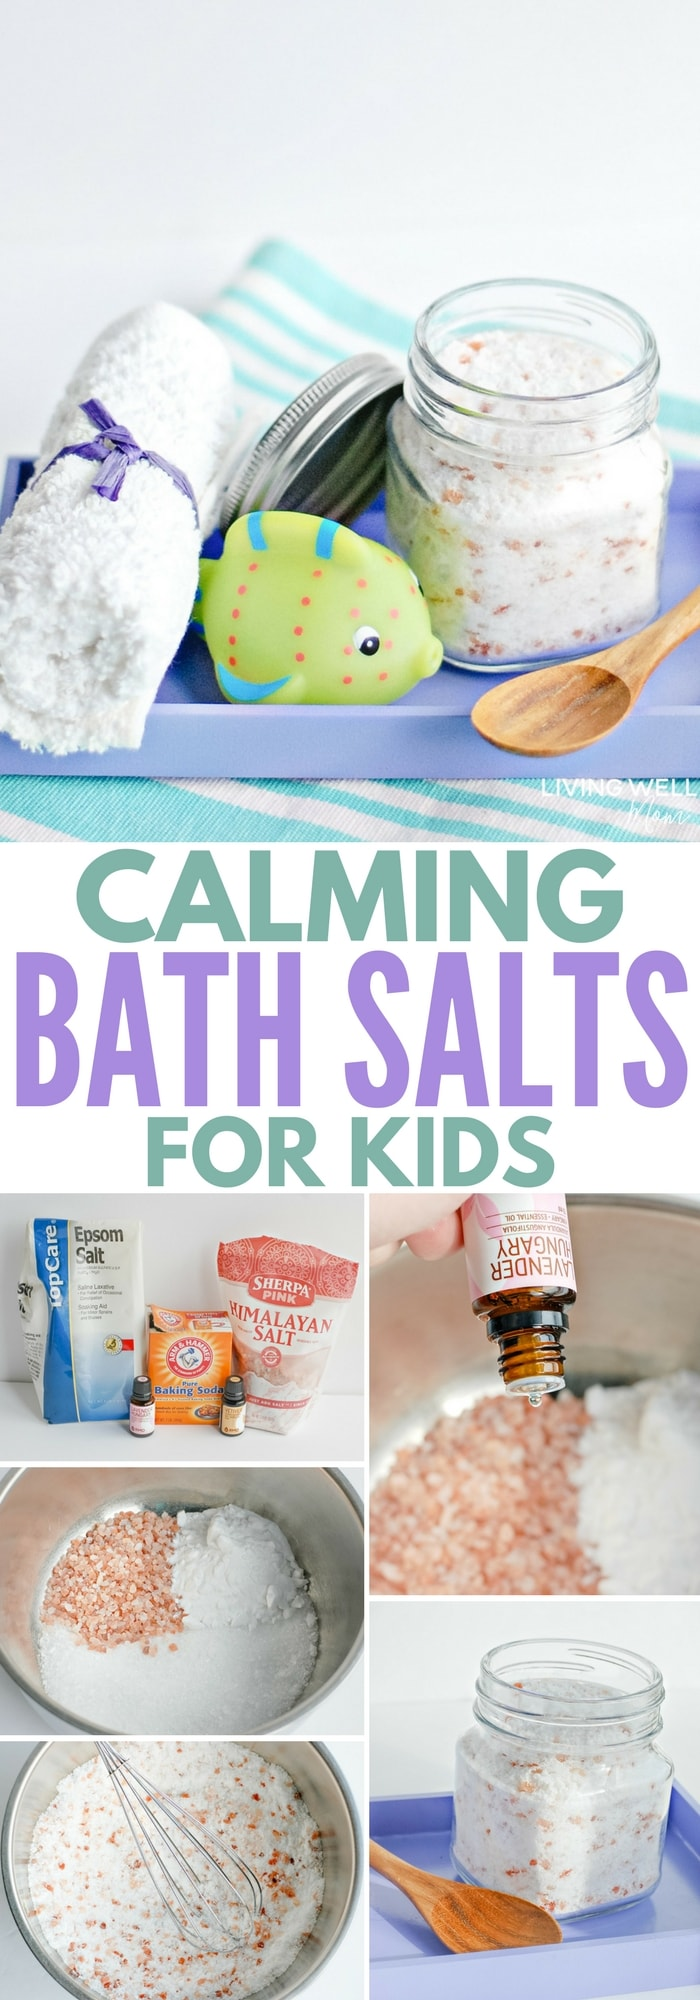 How to make calming bath salts for kids